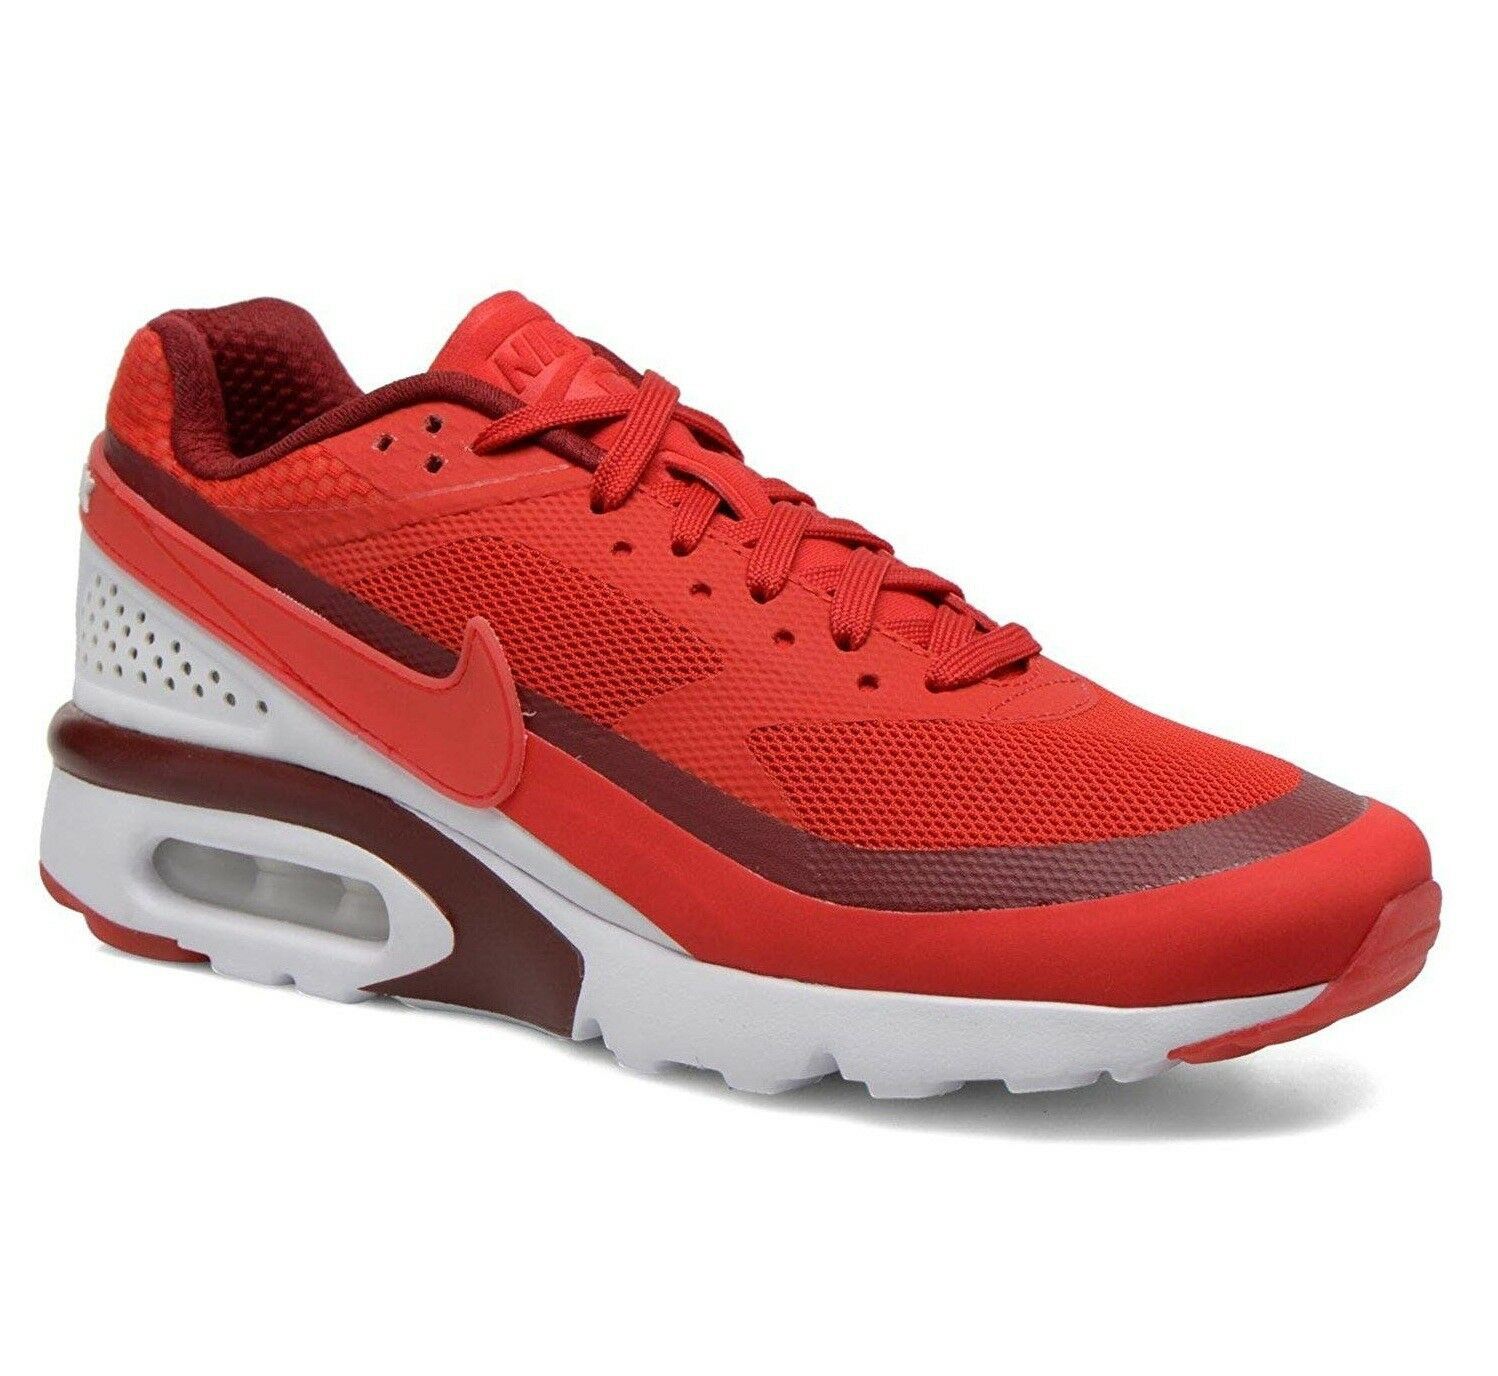 Nike Air Max BW Ultra University Red Bright Crimson 819475-616 Mens Size 9.5